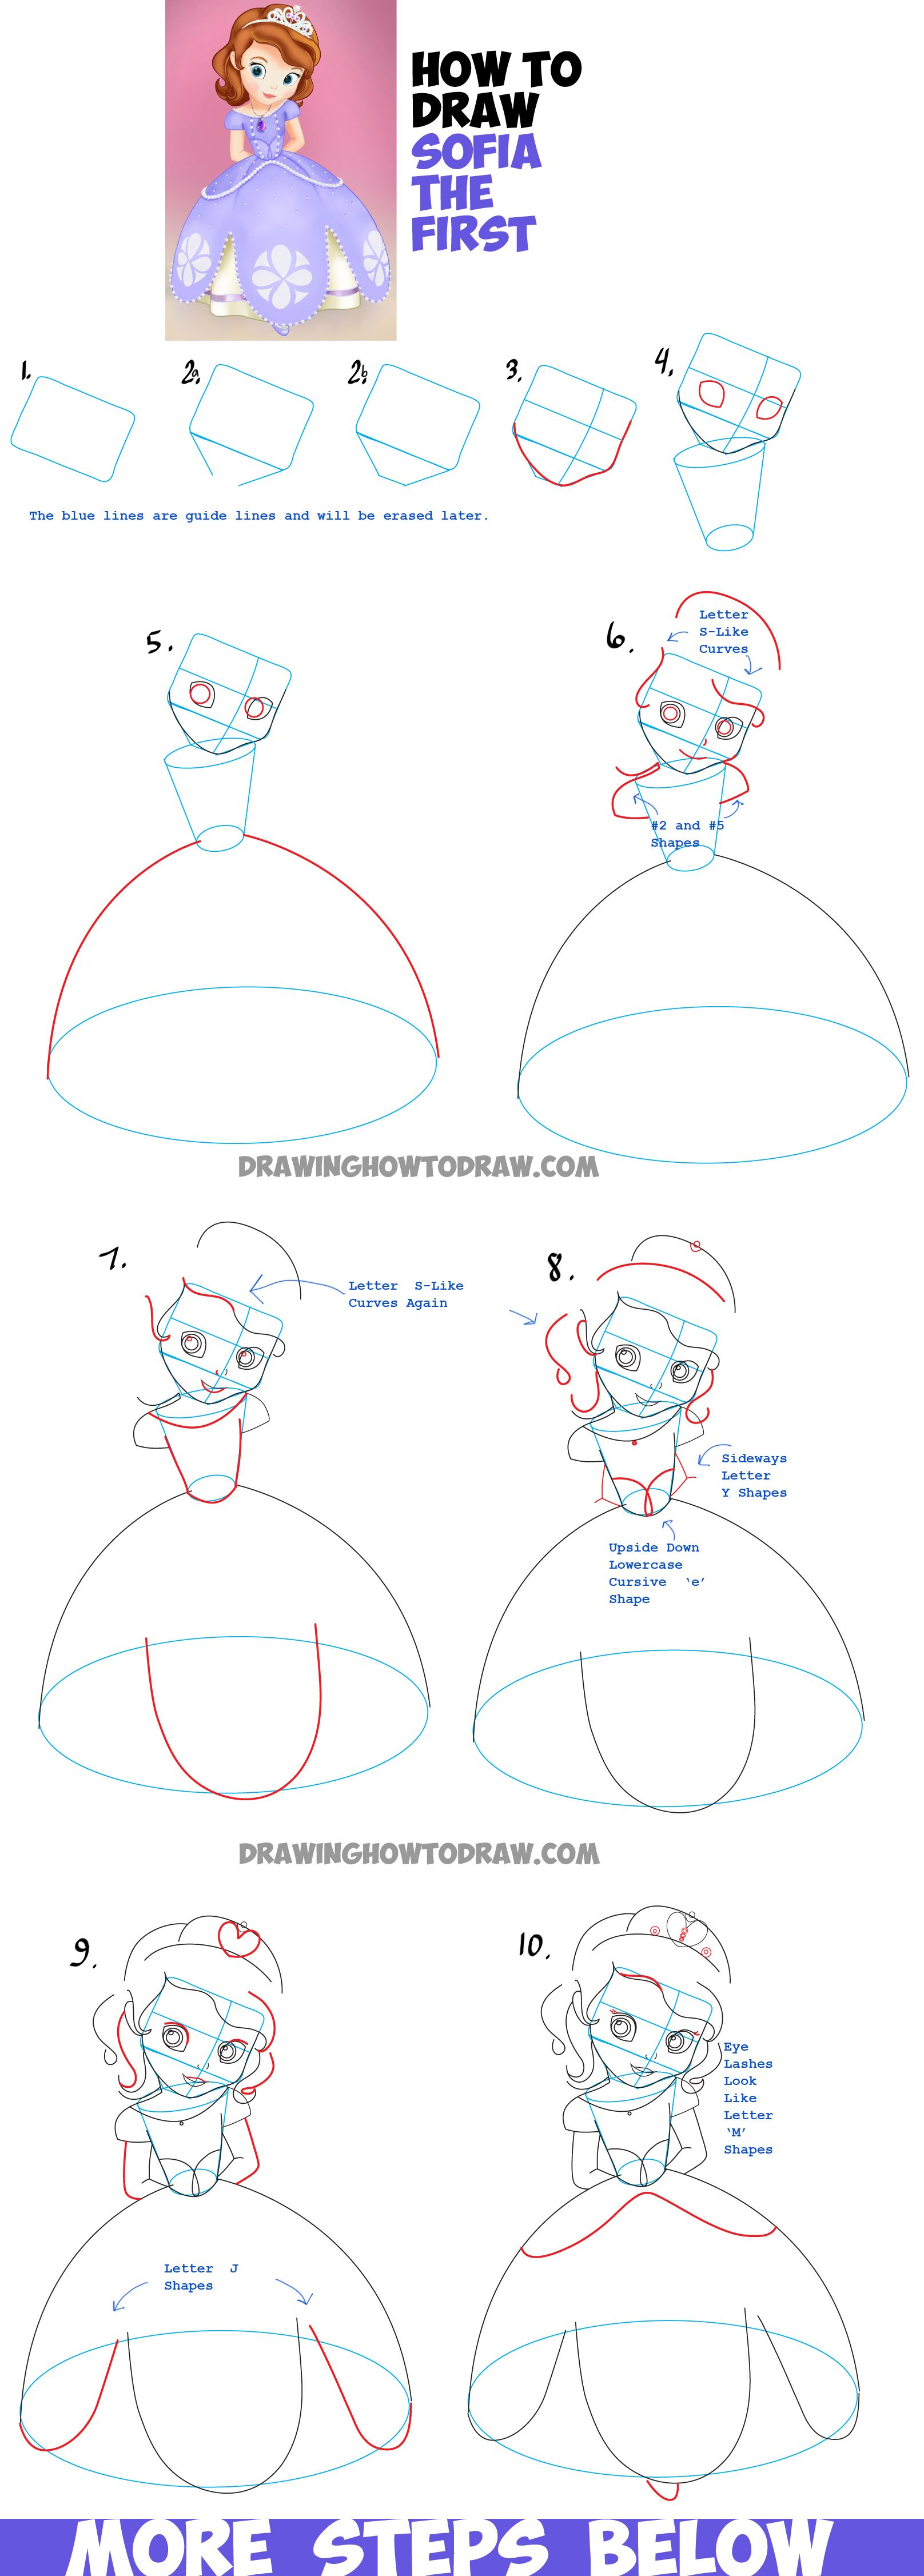 How To Draw Sofia From Sofia The First Easy Step By Step Drawing